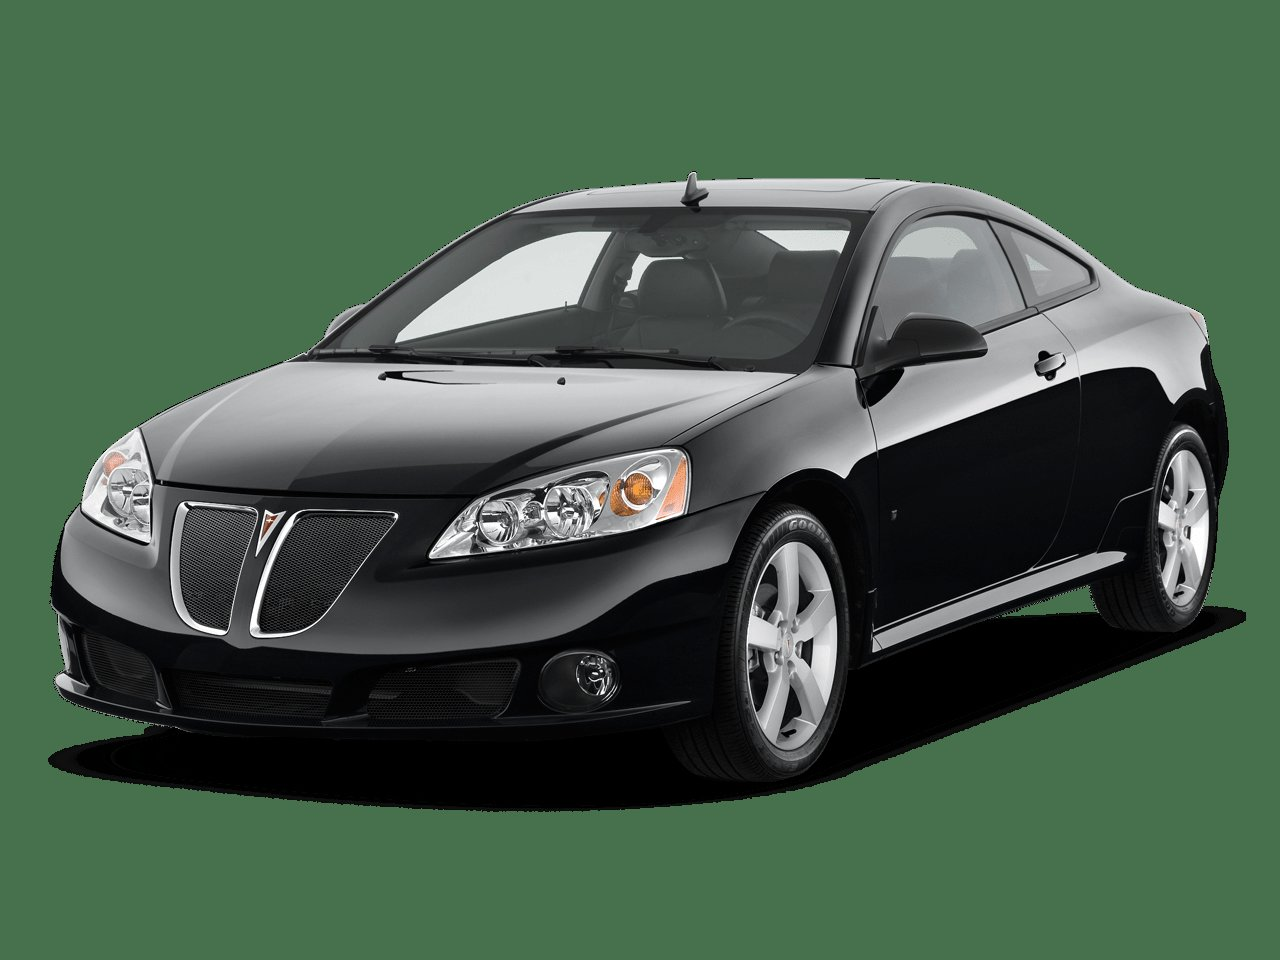 New 2009 Pontiac G6 Reviews And Rating Motor Trend On This Month